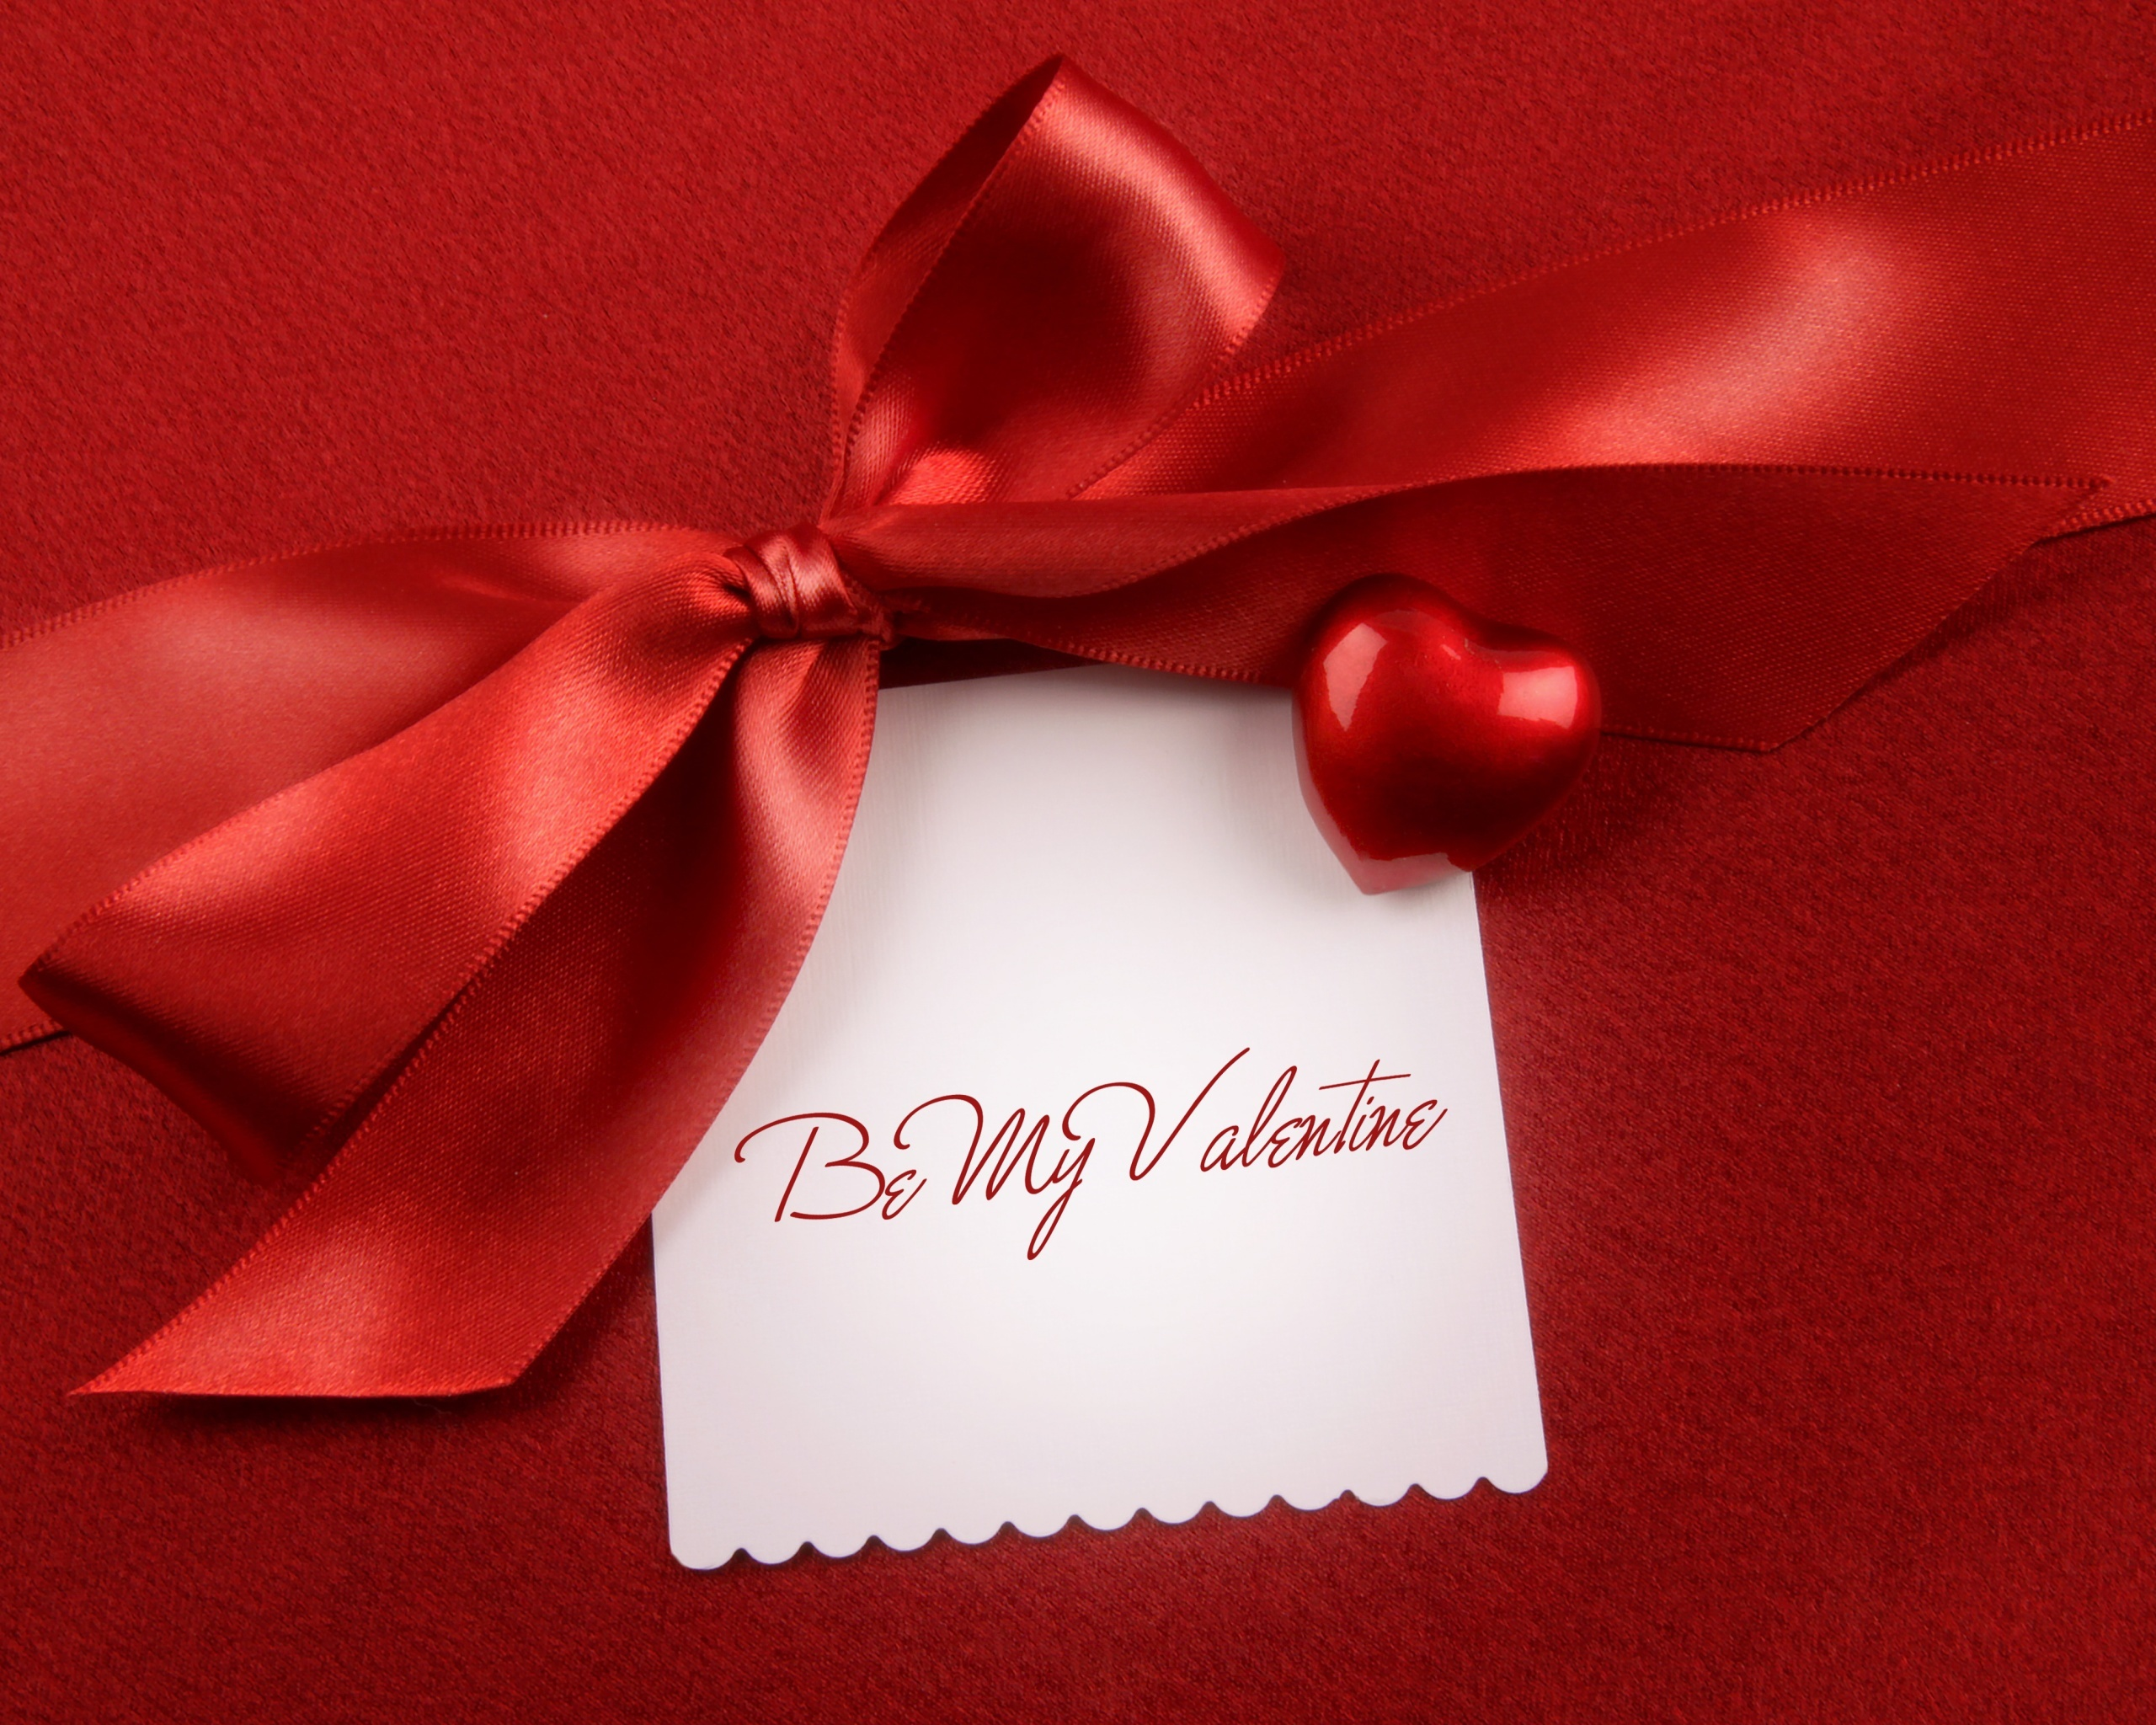 15715 download wallpaper Holidays, Valentine's Day screensavers and pictures for free